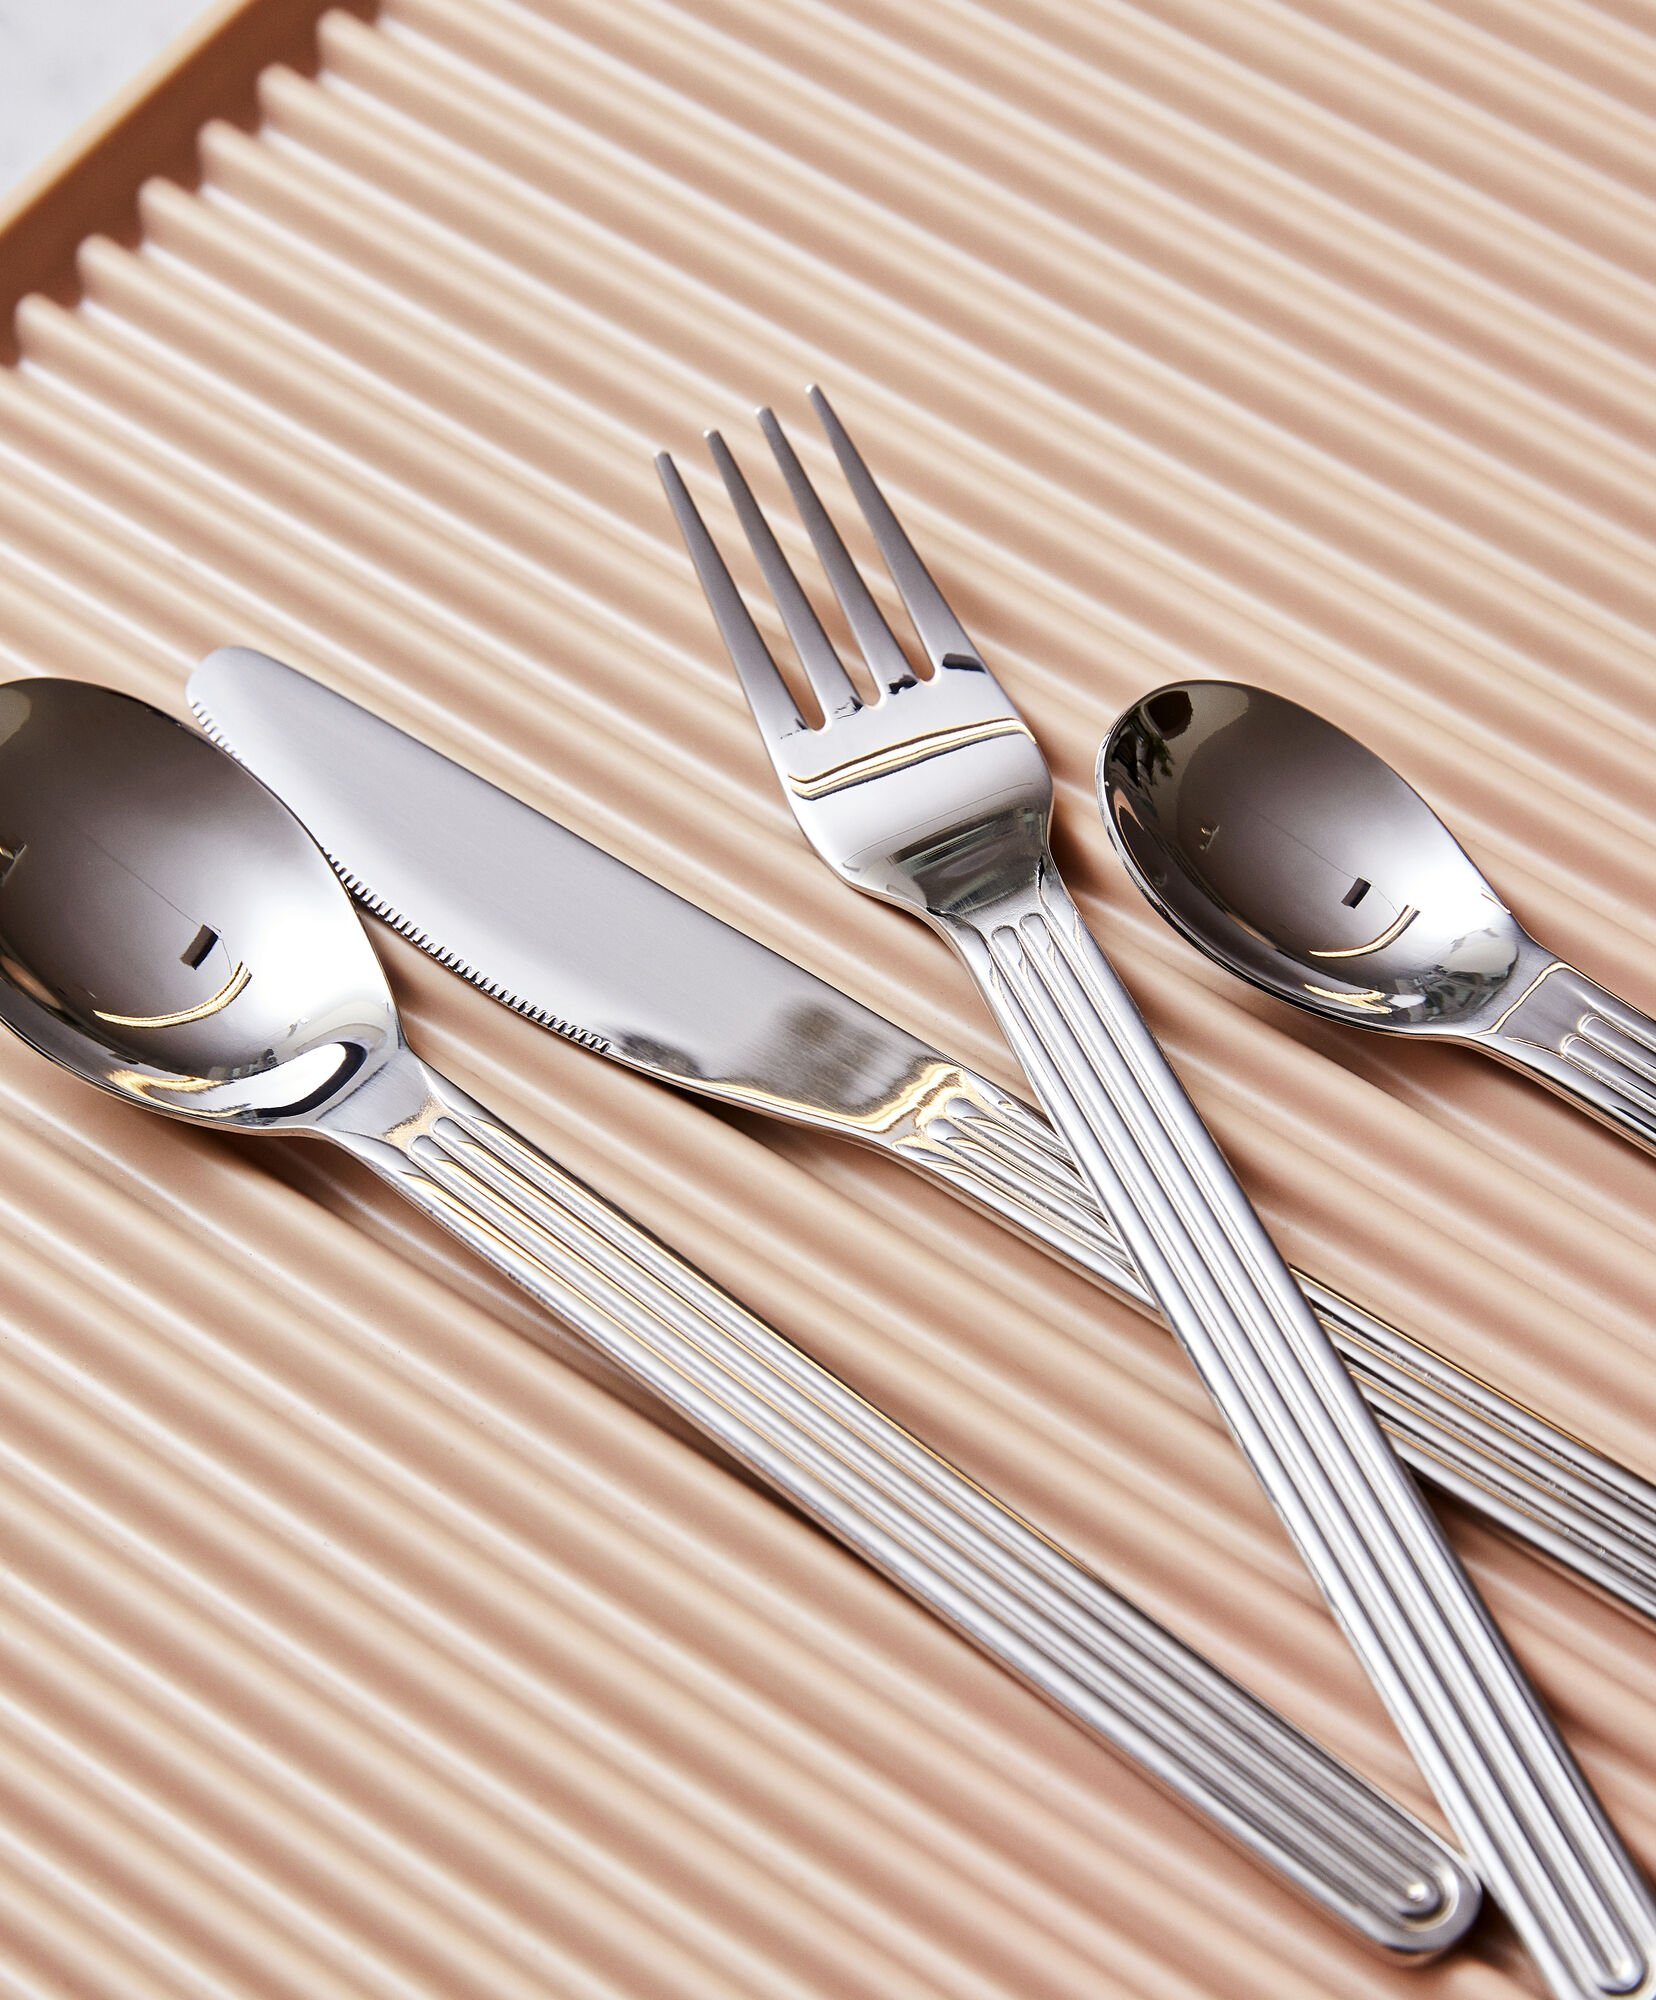 Stainless steel grooved flatware from Hay